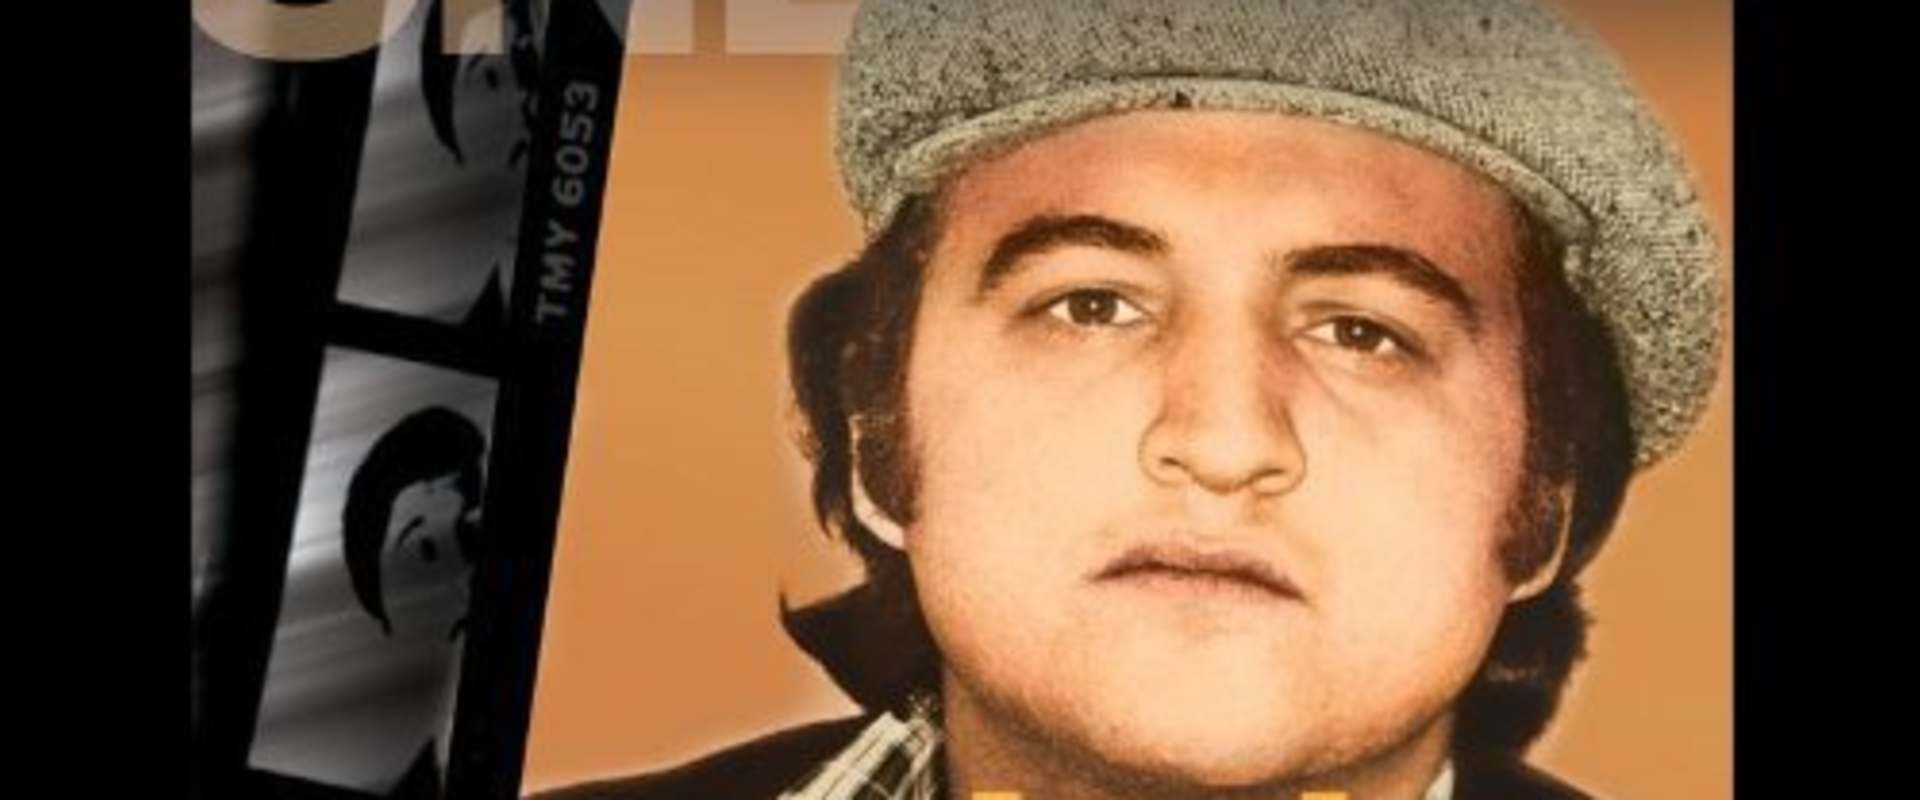 Saturday Night Live: The Best of John Belushi background 1